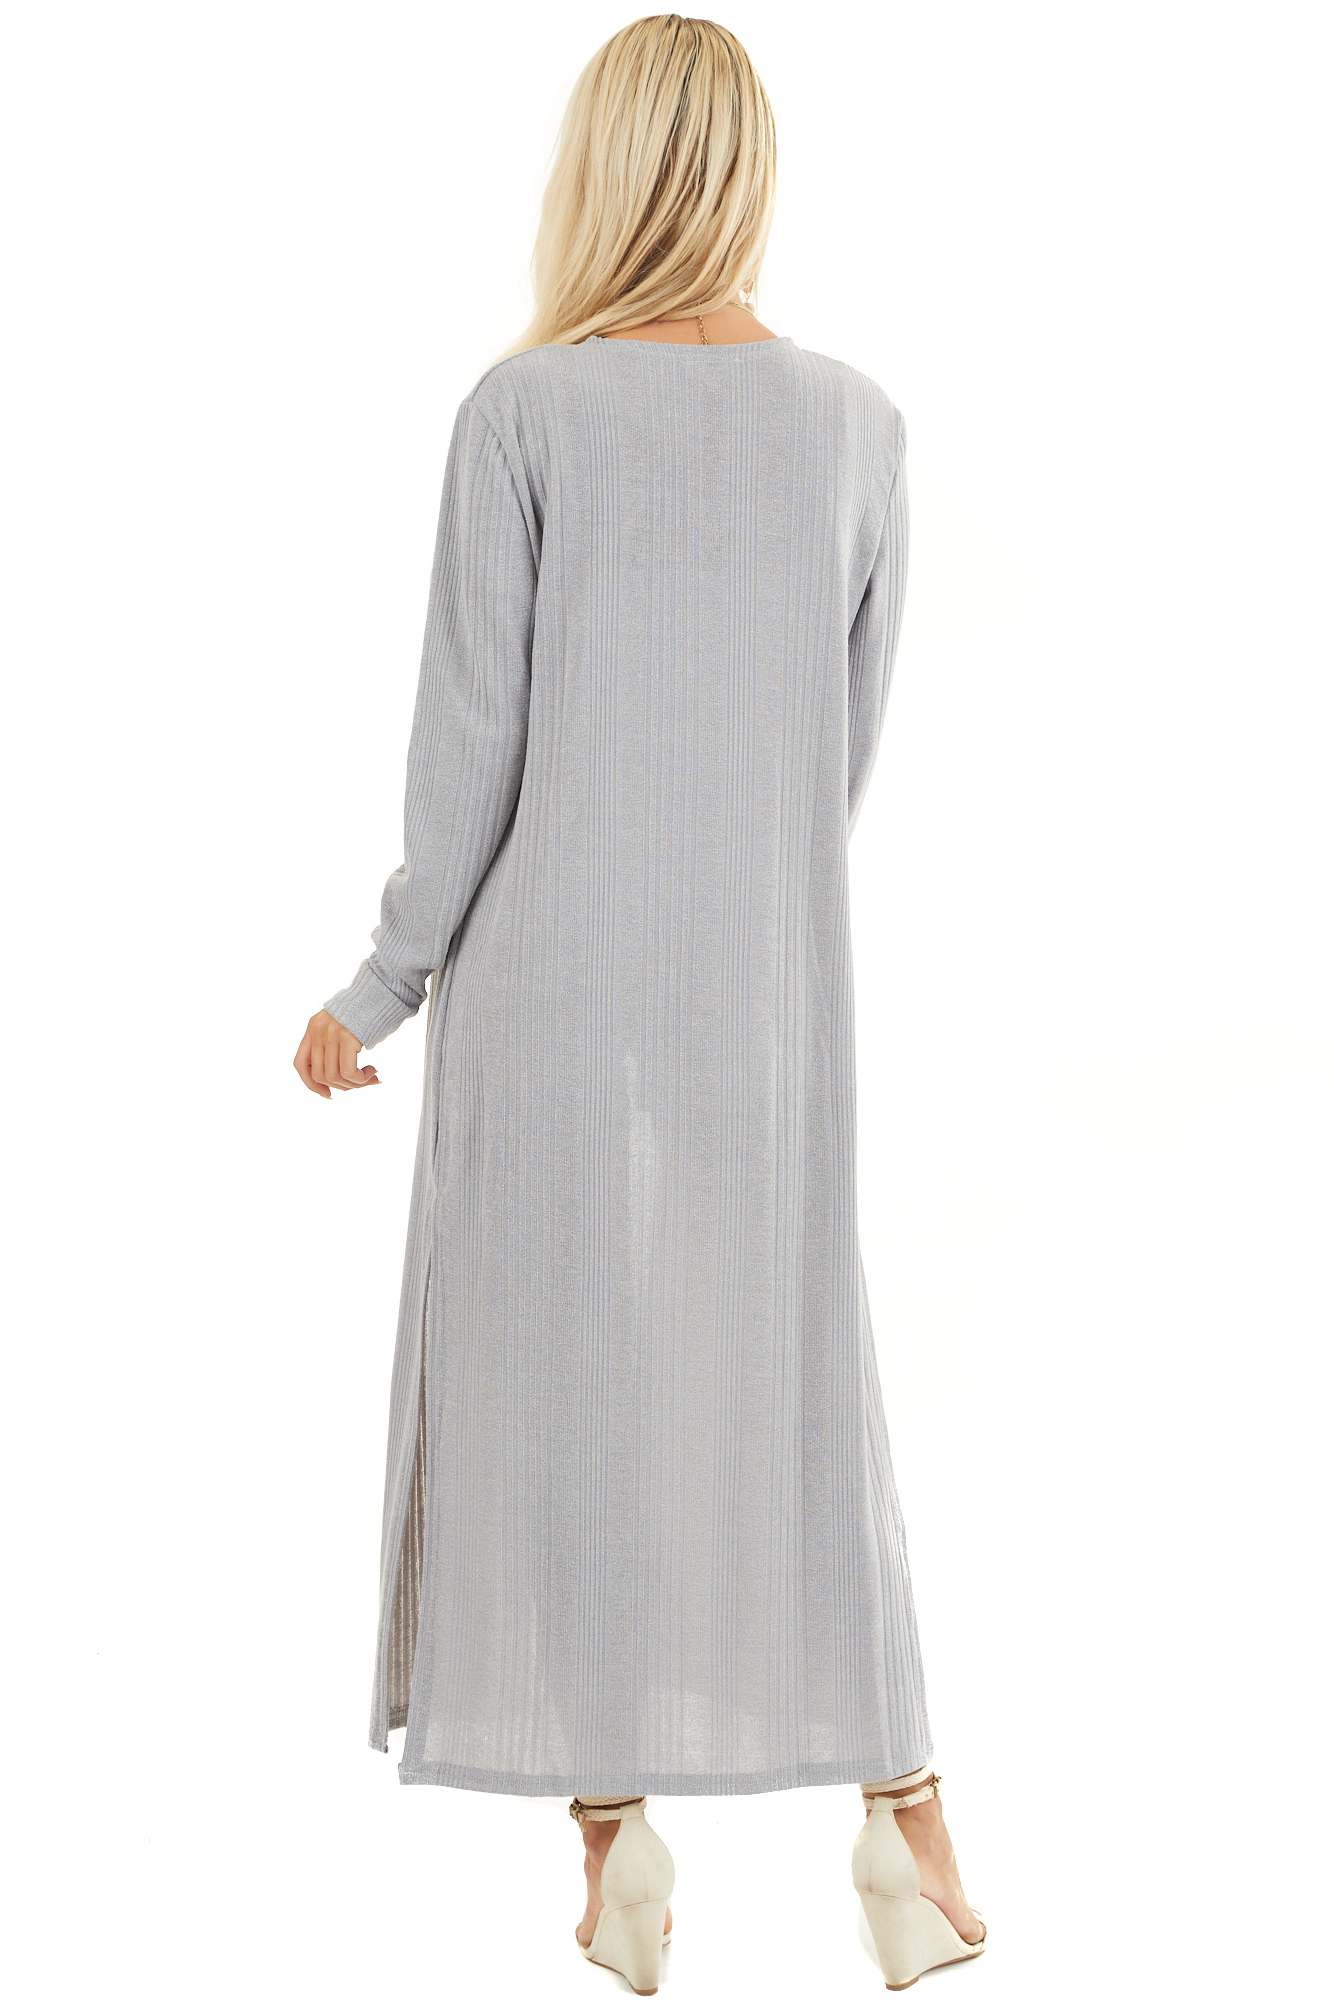 Soft Grey Knit Long Sleeve Duster Cardigan with Side Slits back full body